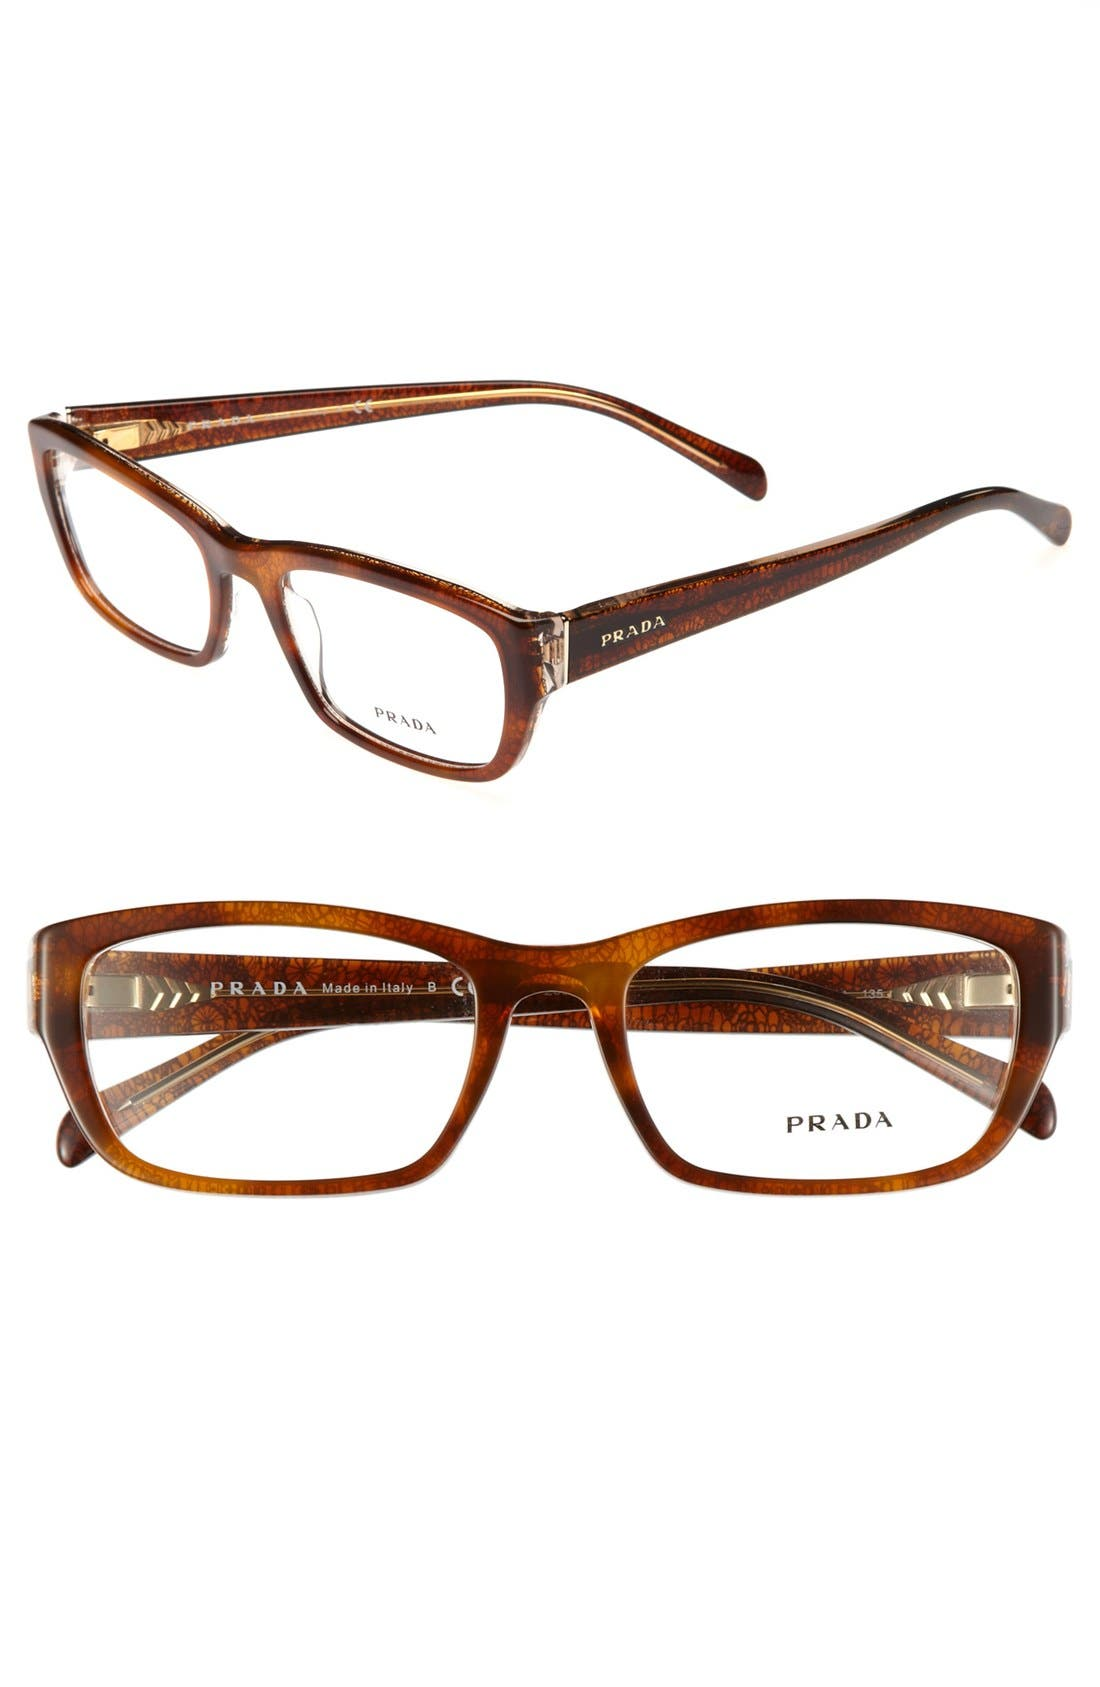 Alternate Image 1 Selected - Prada 52mm Optical Glasses (Online Only)